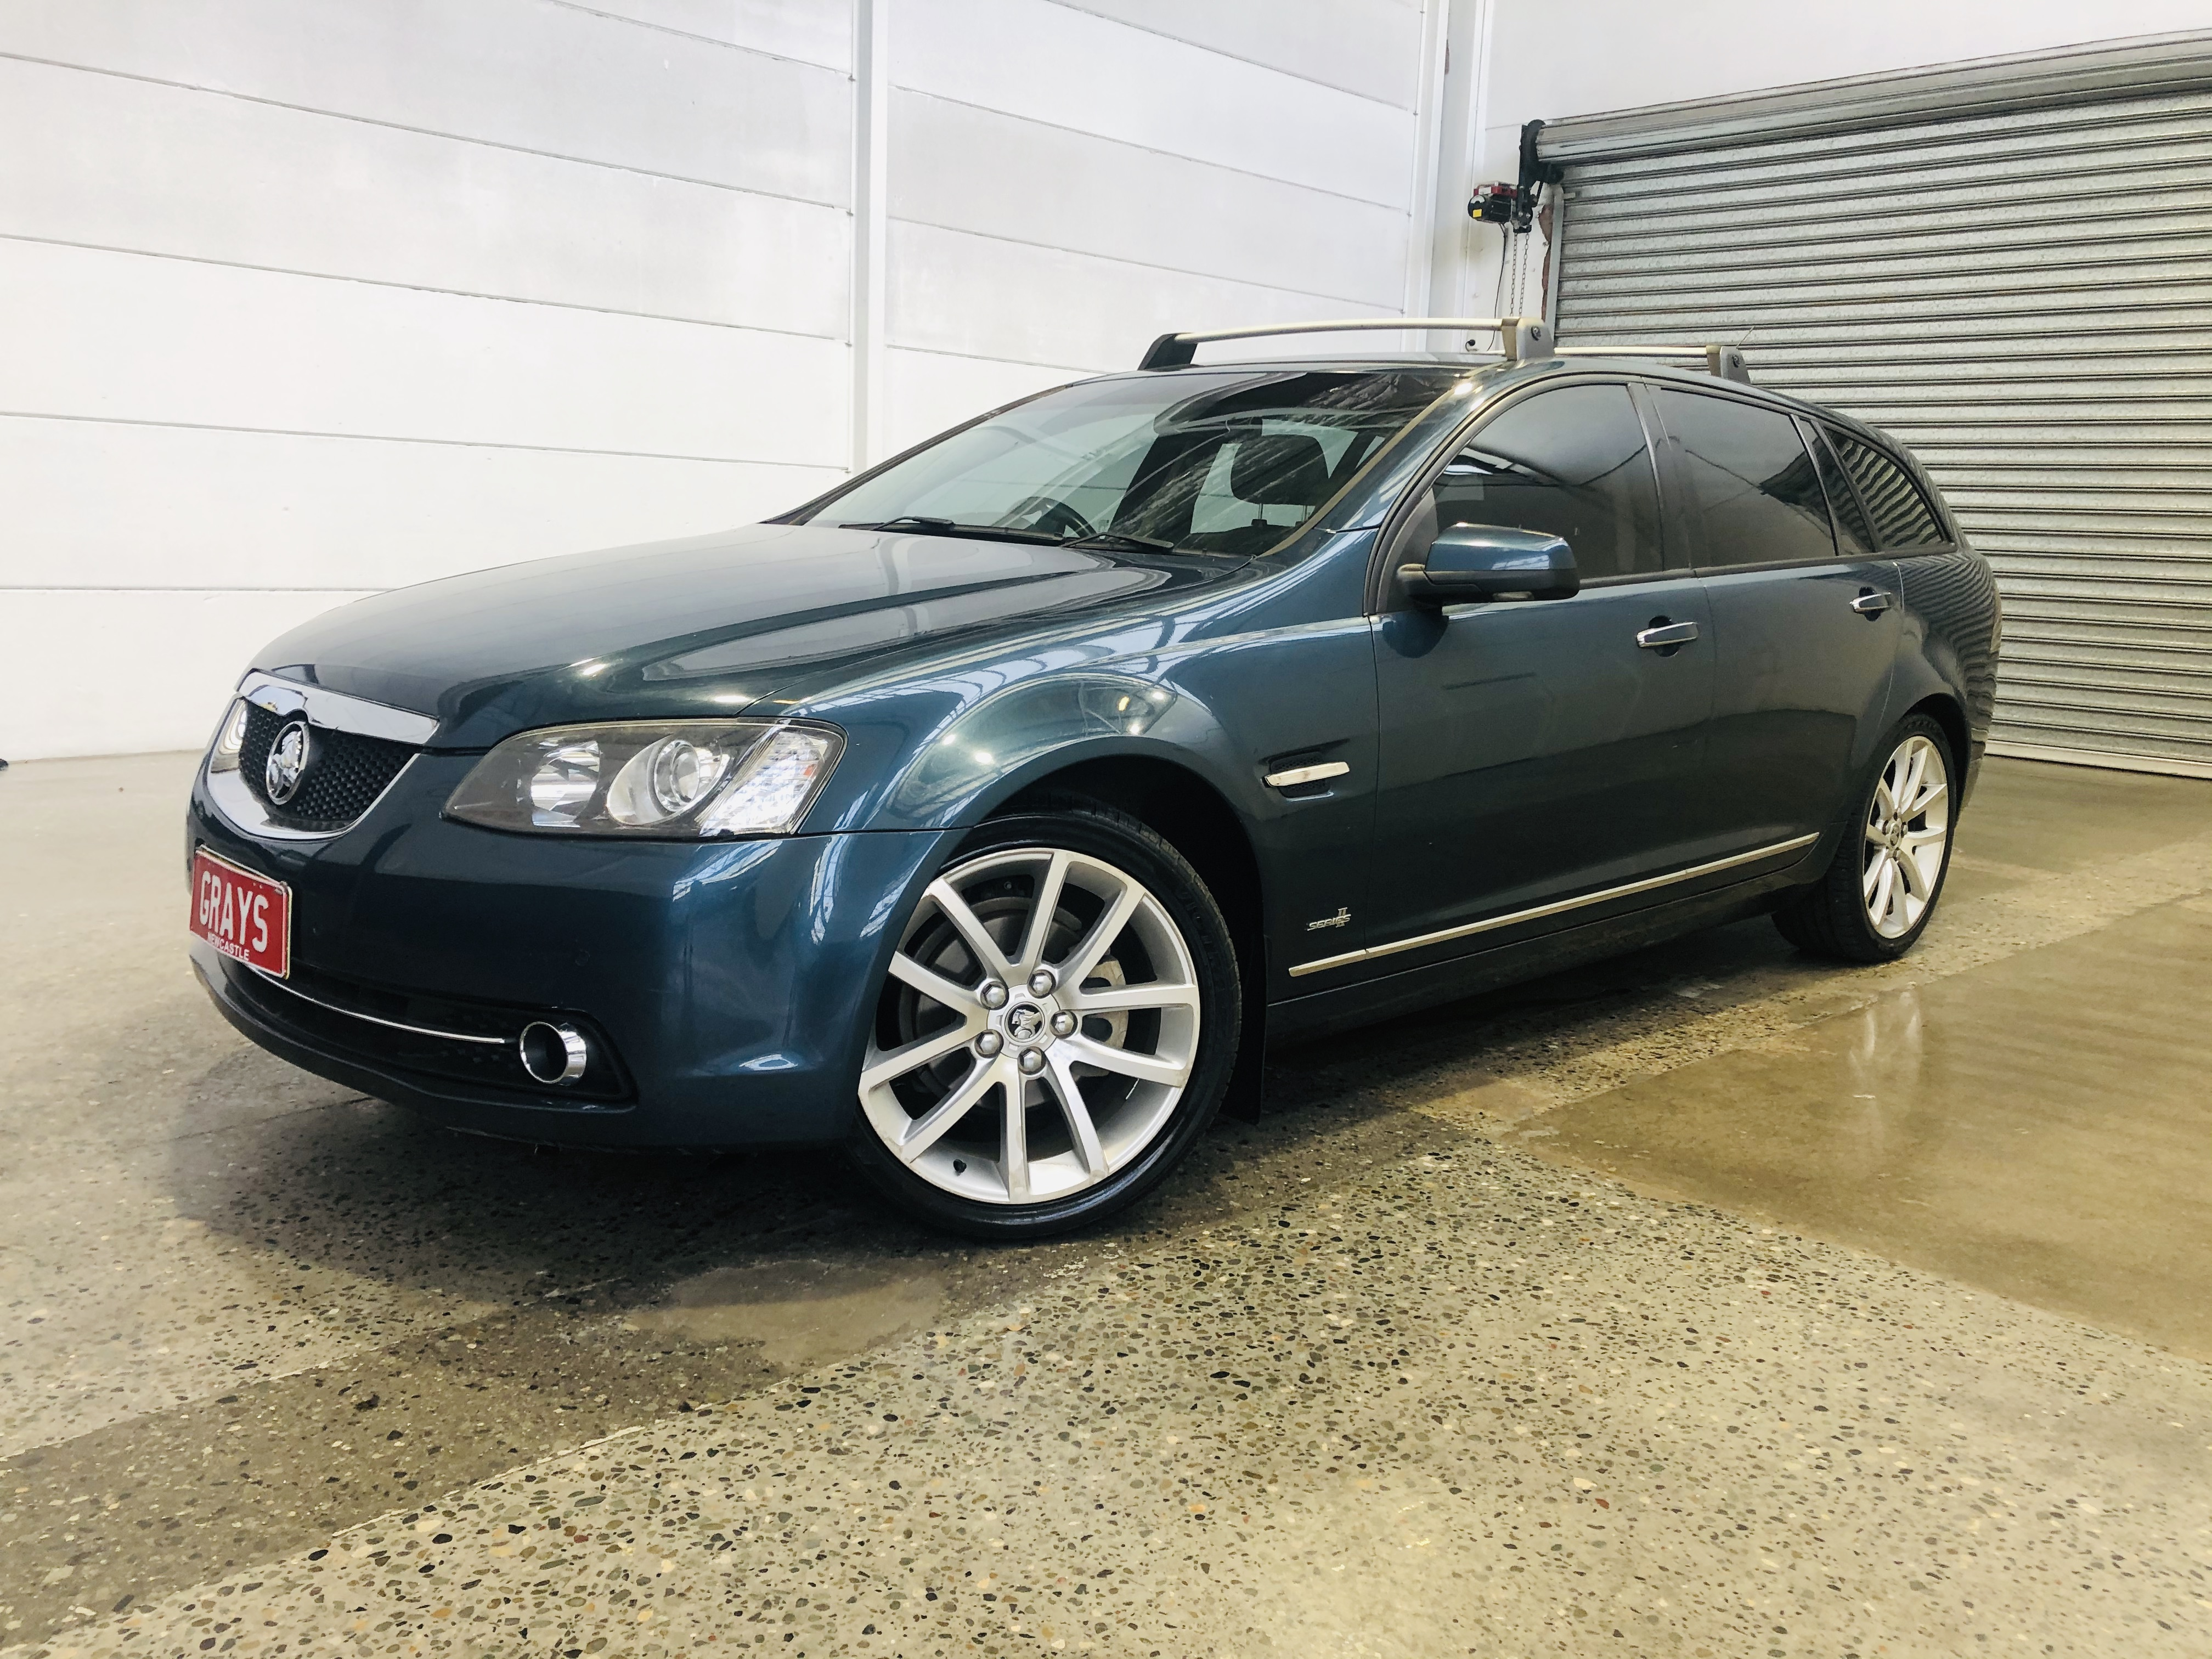 2011 Holden Calais V VE Automatic Wagon